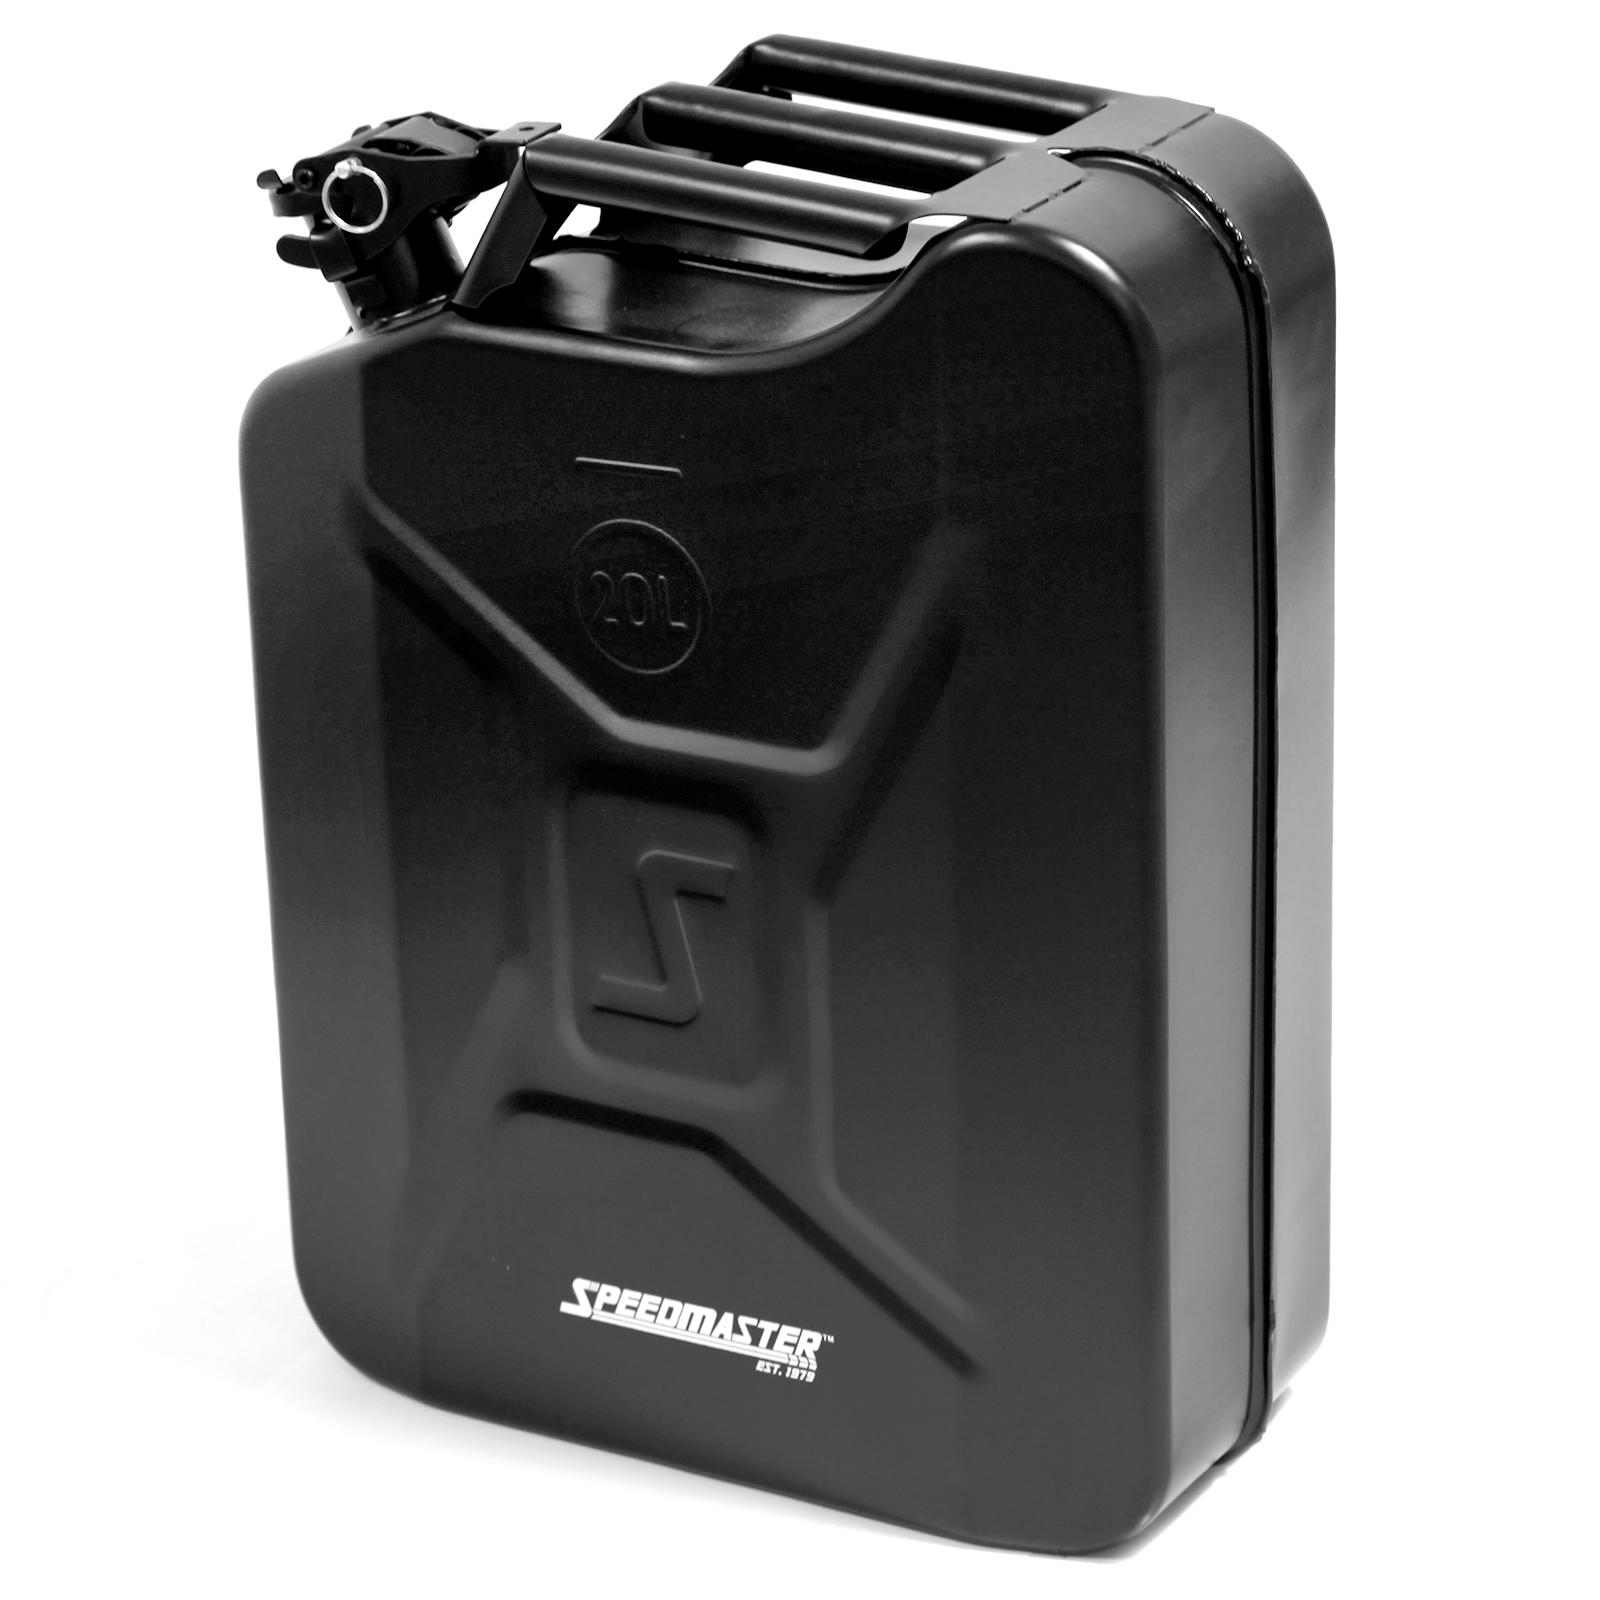 5.2 Gallons / 20 liter Steel Jerry Can Fuel Storage Leak Proof Multiple Locking